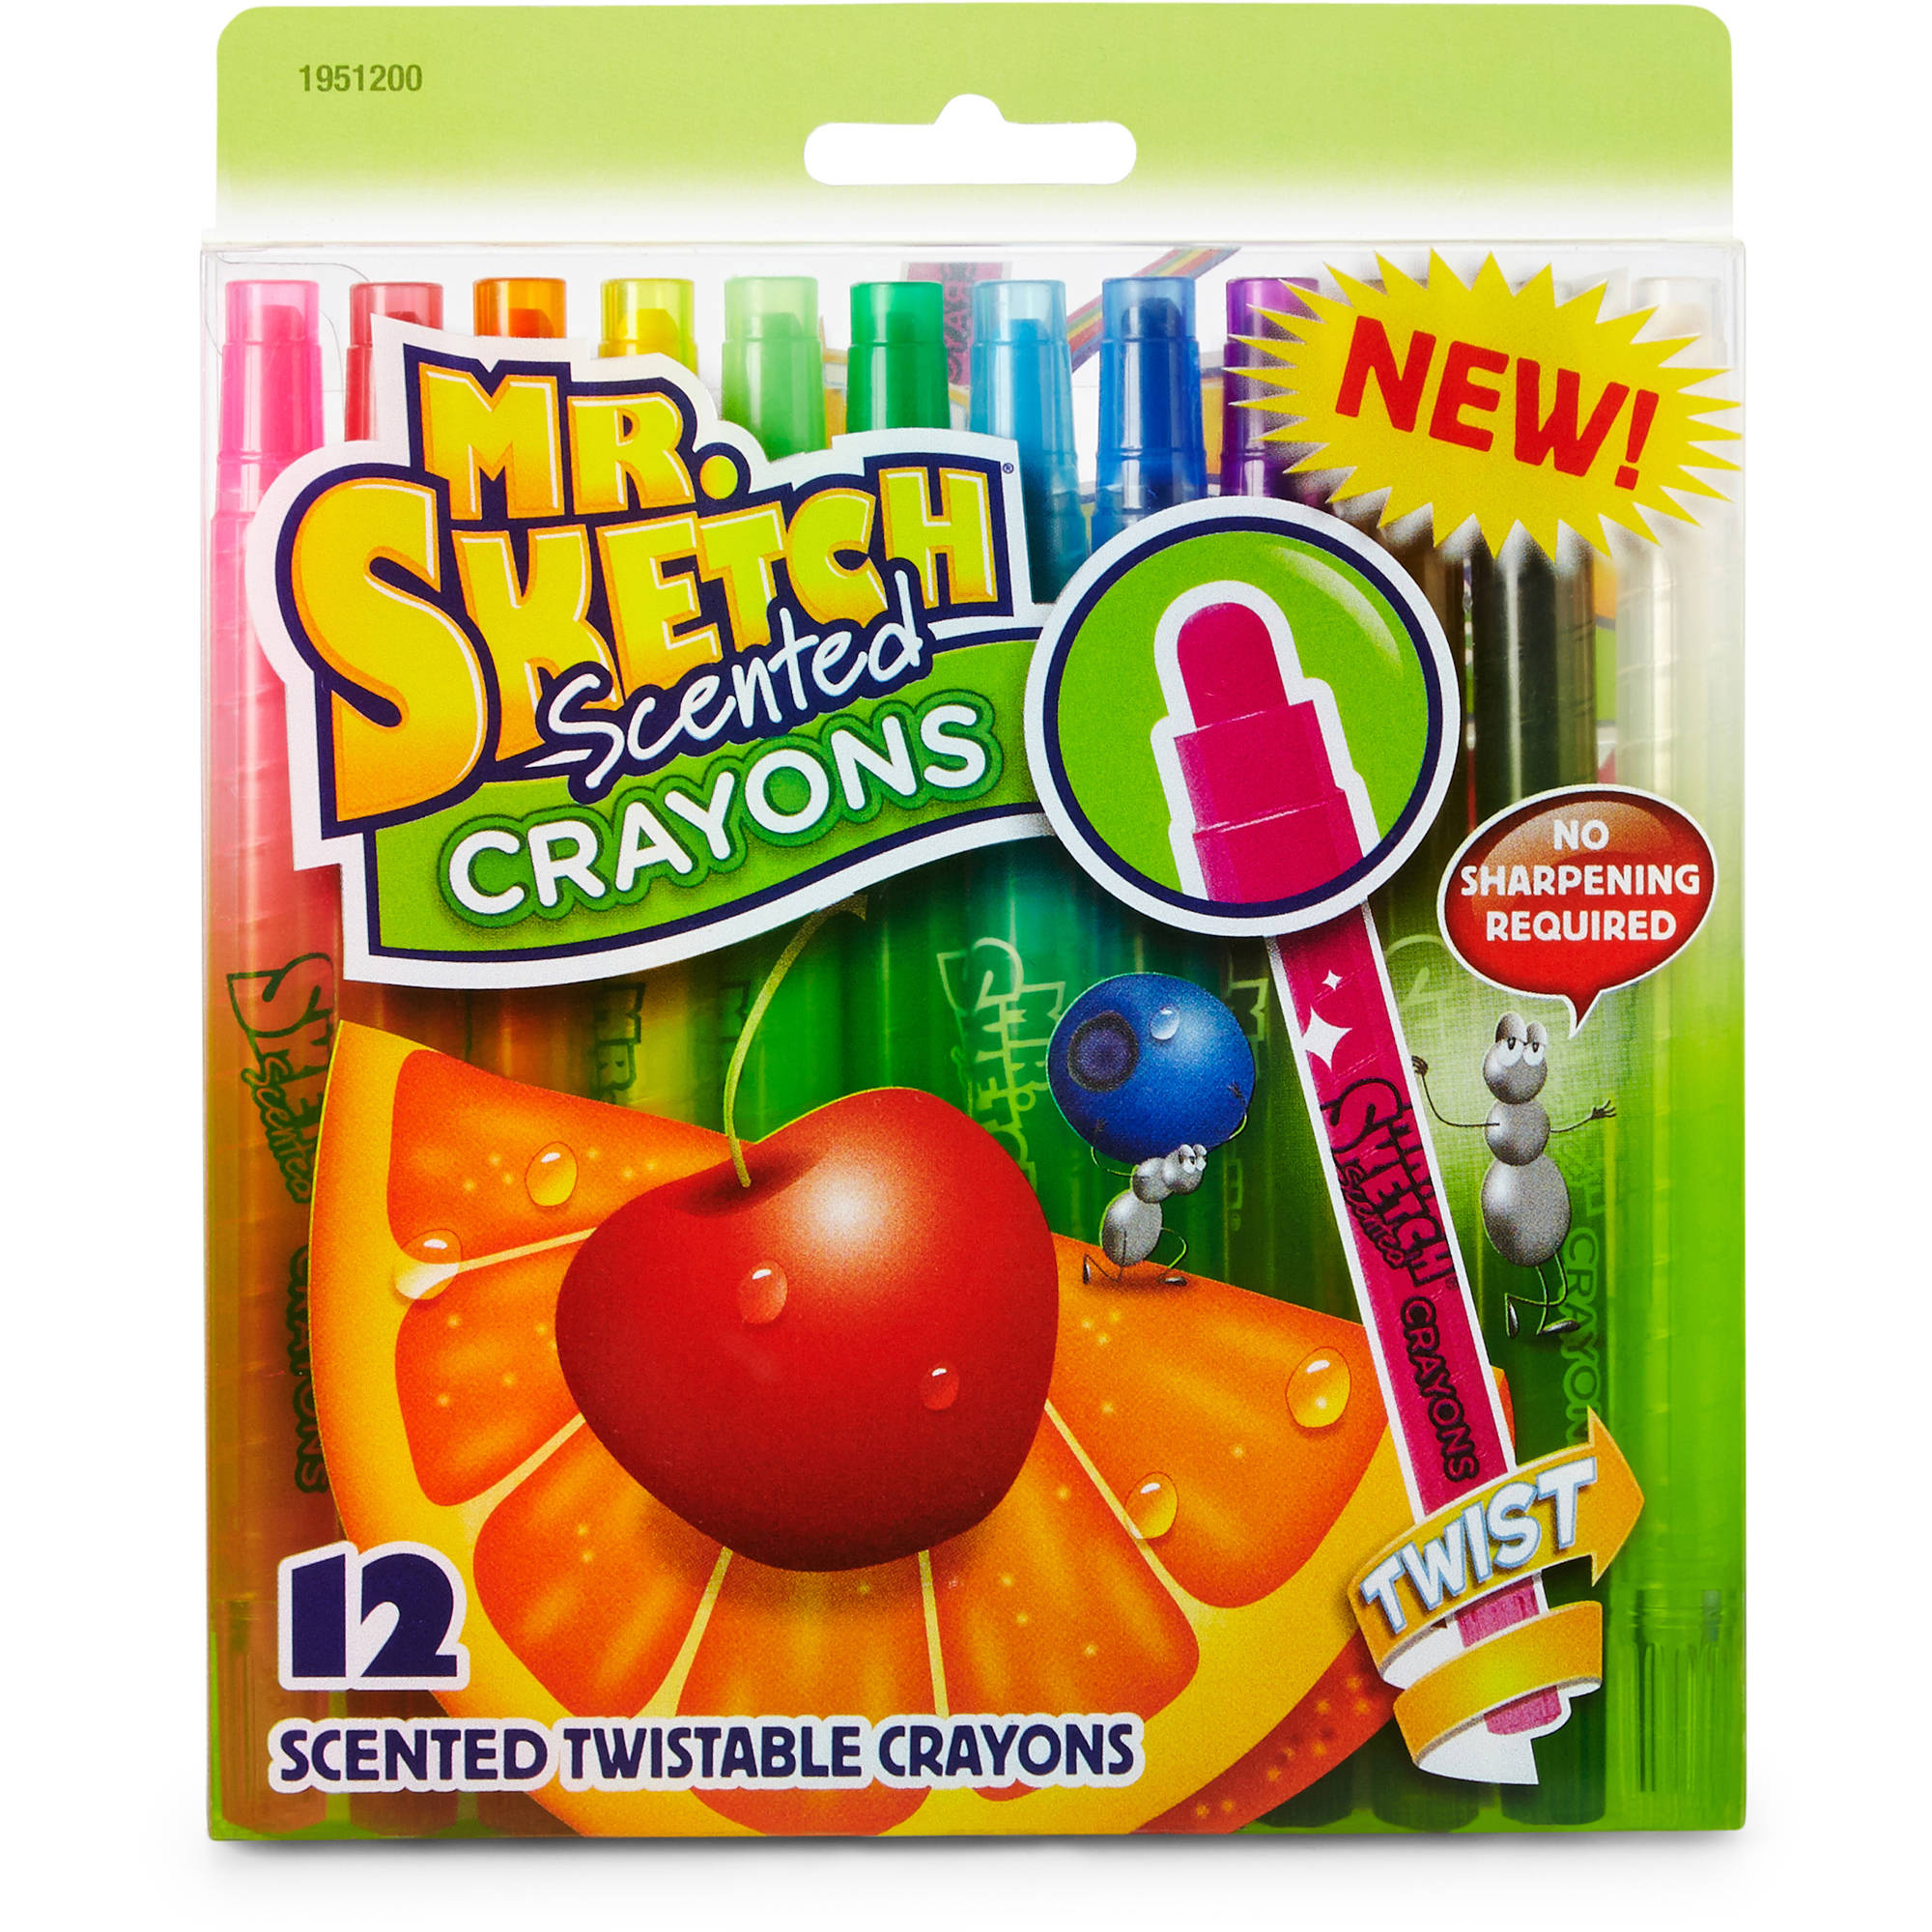 Mr. Sketch Scented Twistable Crayons, Assorted, 12pk